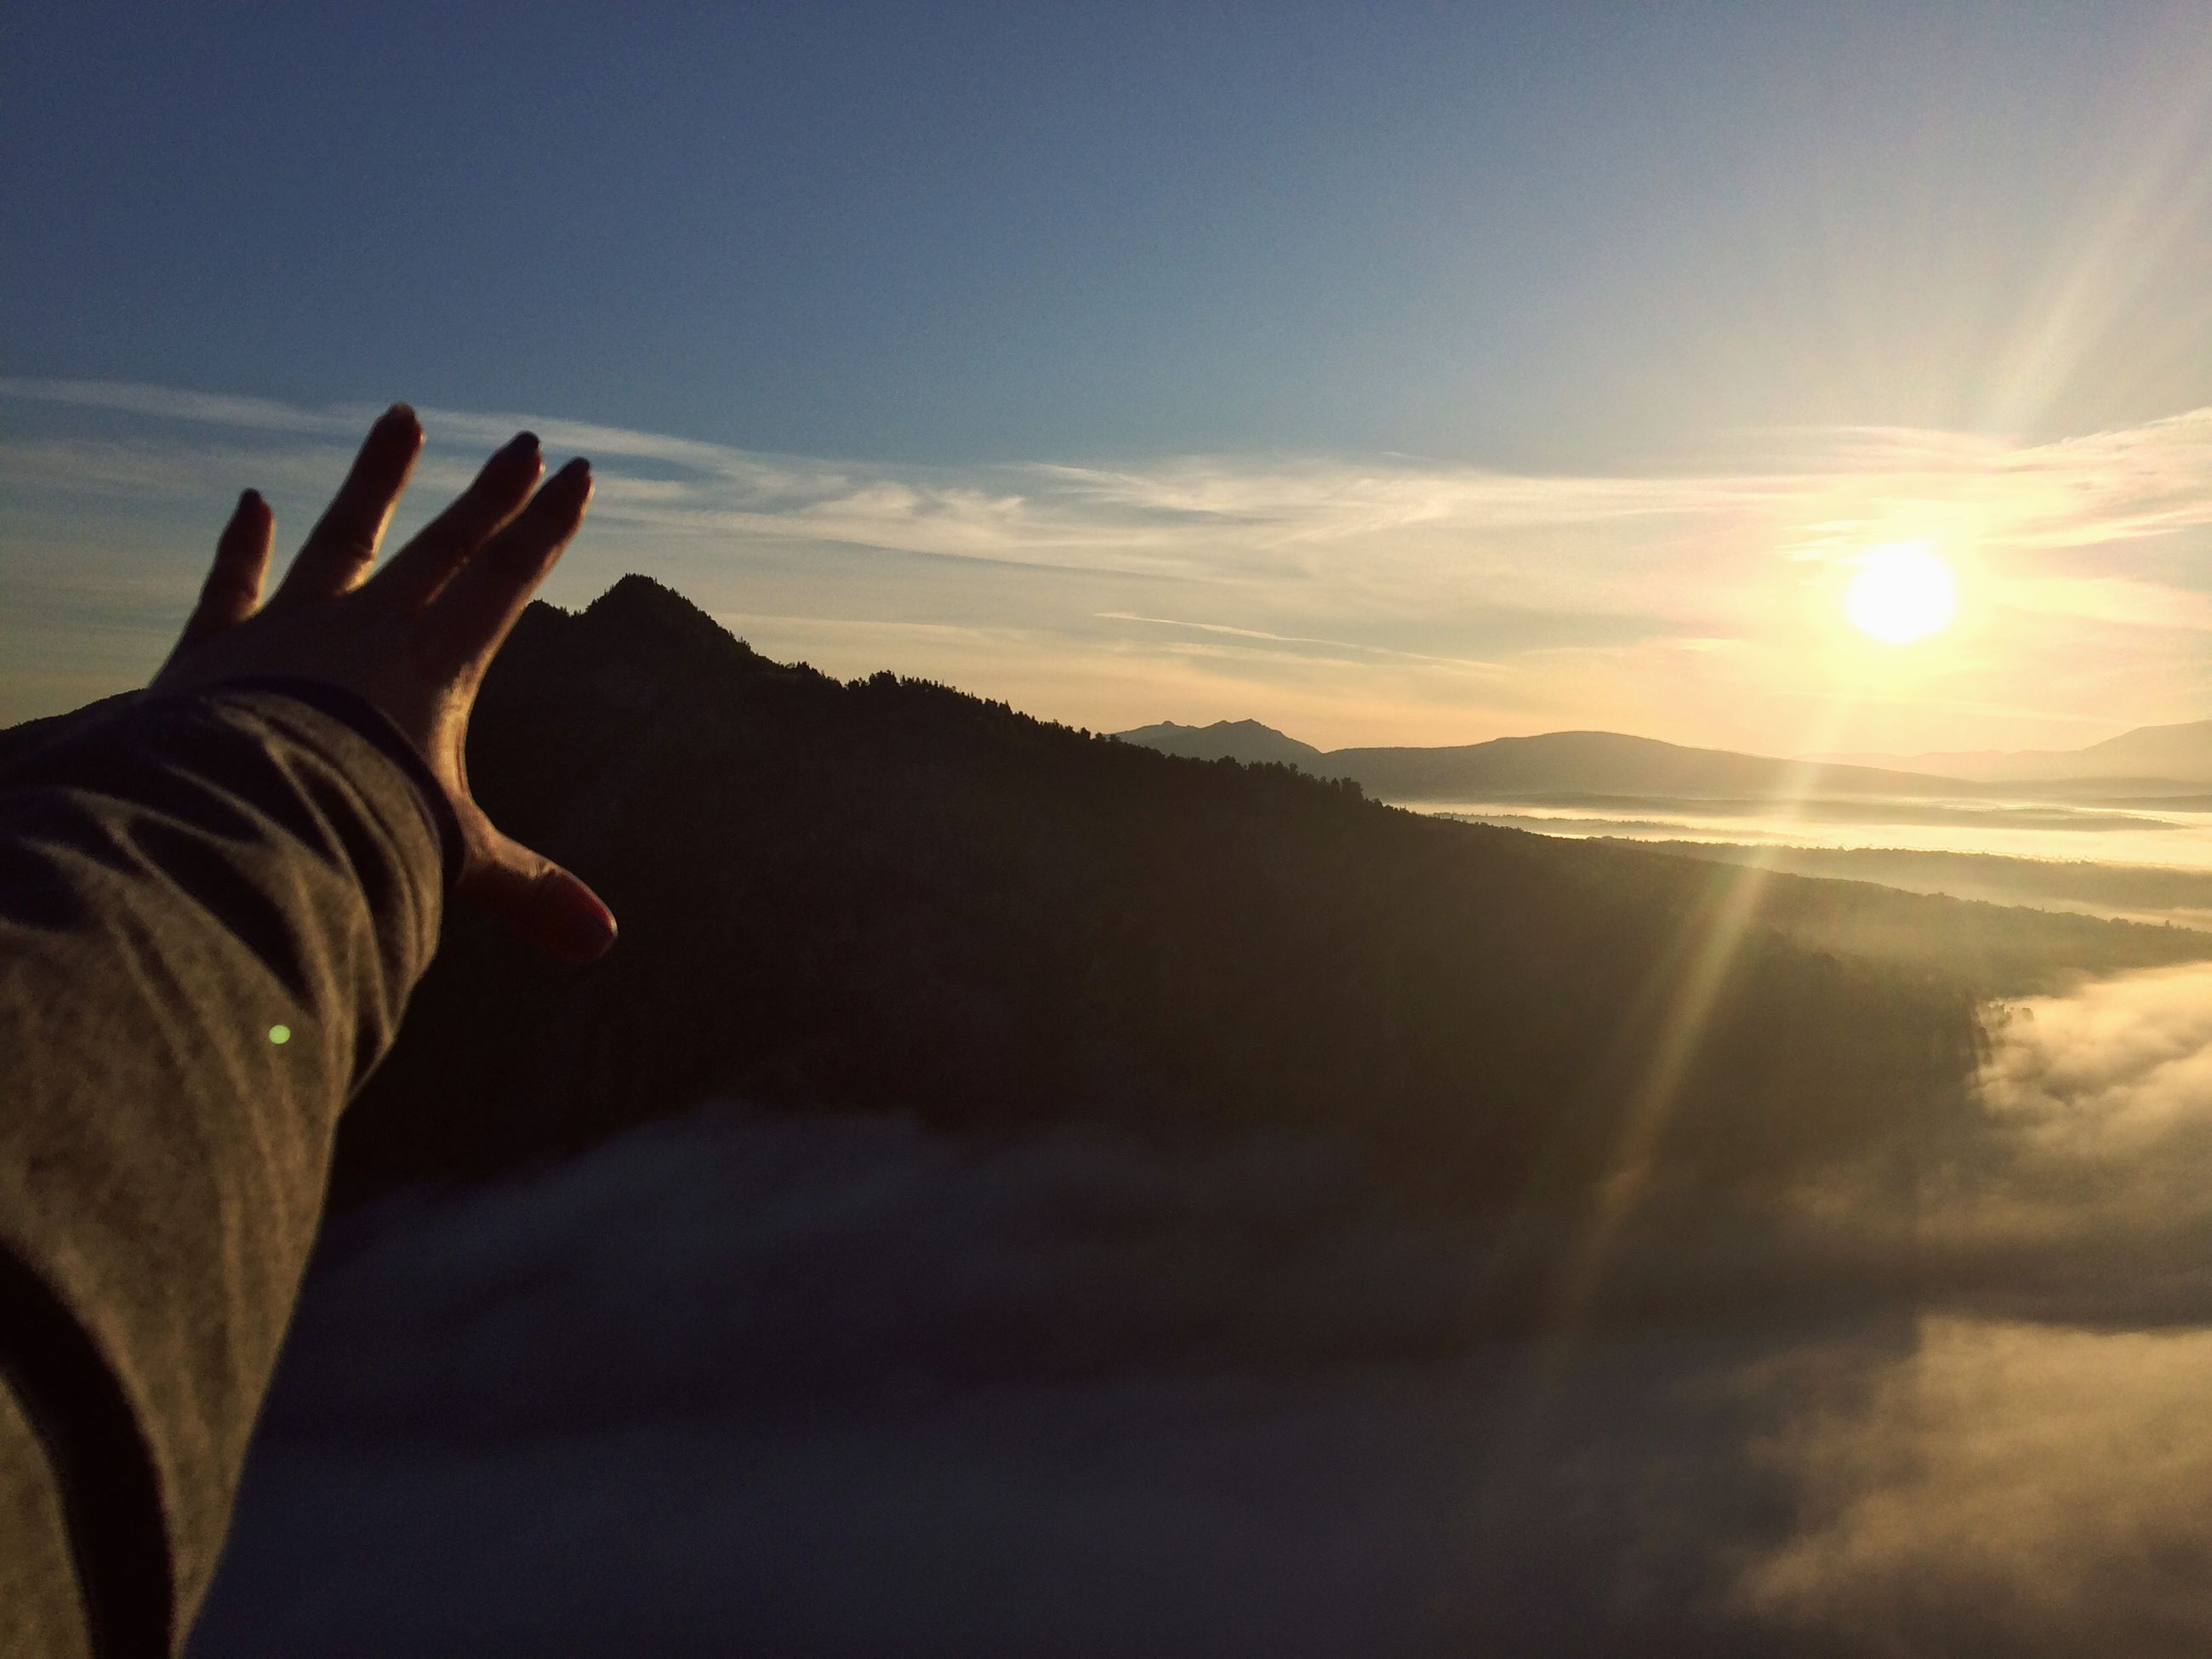 sky, sunset, cloud - sky, real people, sun, scenics - nature, one person, nature, beauty in nature, sunlight, mountain, human body part, hand, leisure activity, tranquility, human hand, tranquil scene, sunbeam, lens flare, body part, outdoors, finger, bright, human limb